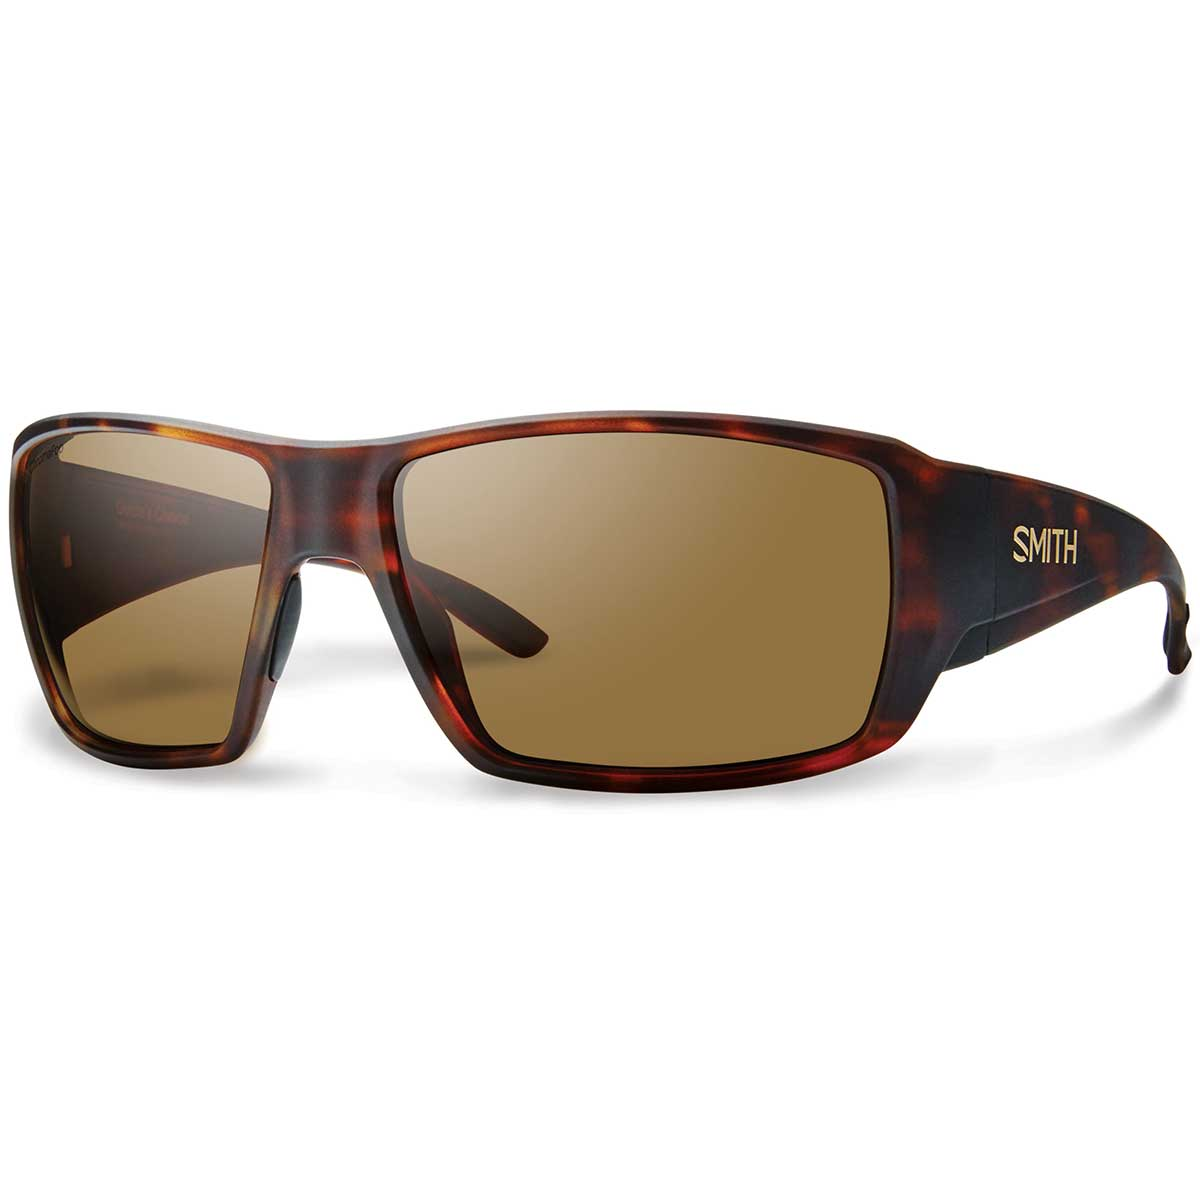 Smith Guides Choice Sunglasses Polarized Chromapop in Matte Havana with Brown main view